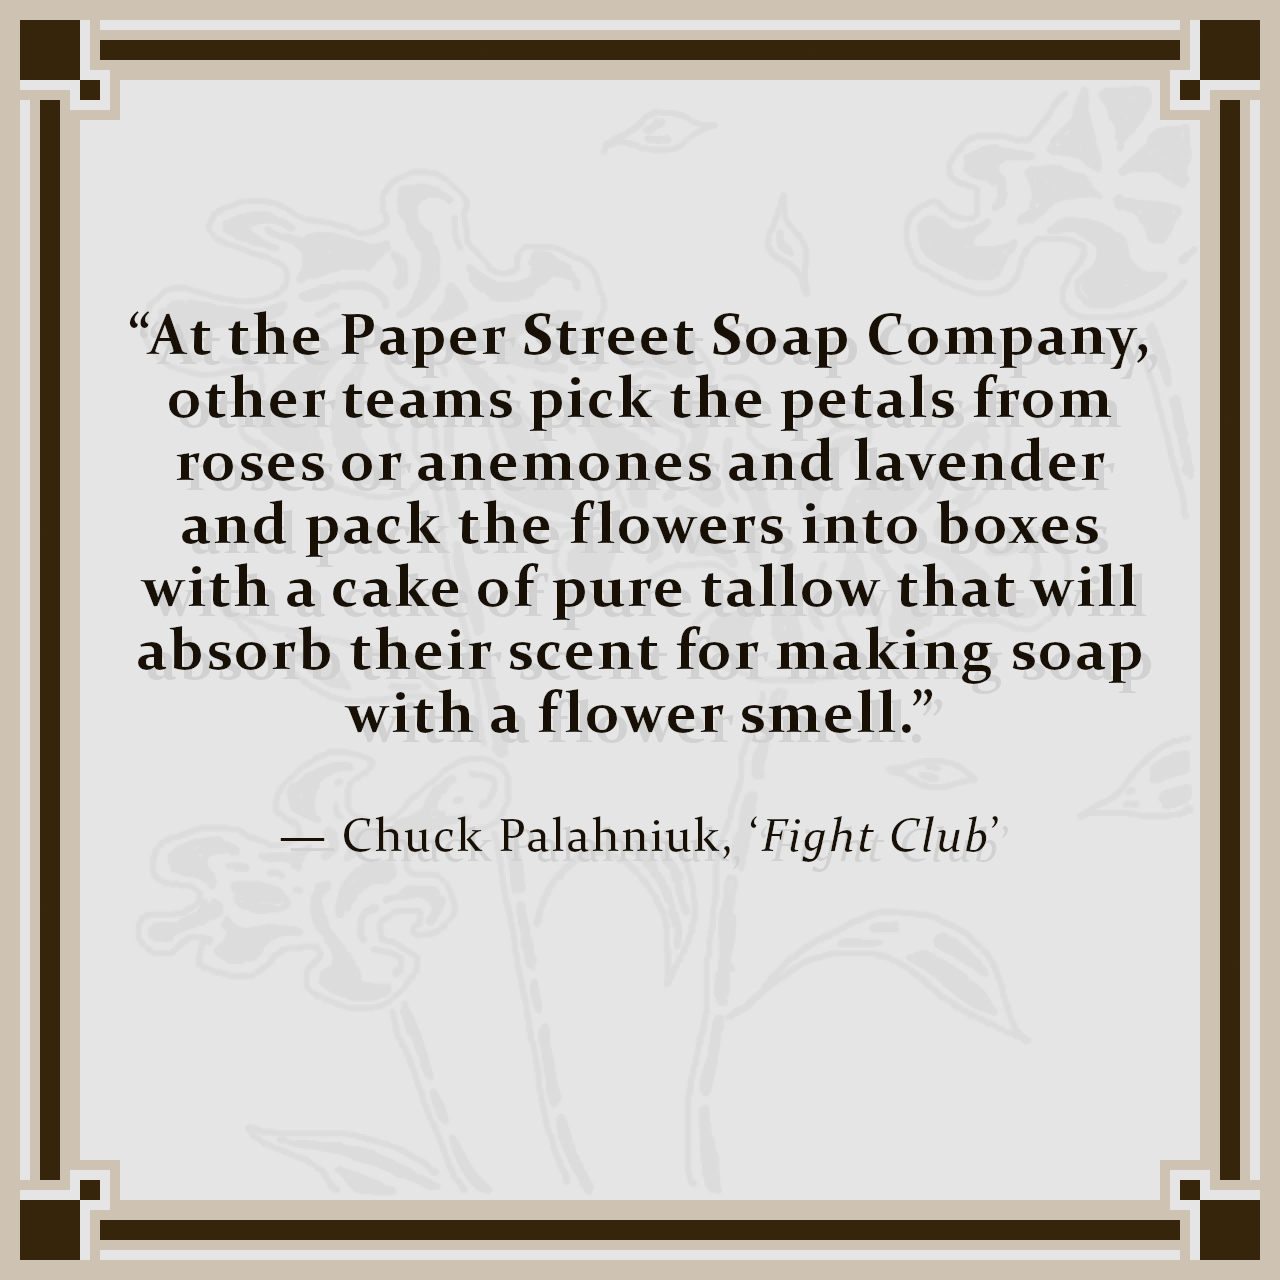 """""""At the Paper Street Soap Company, other teams pick the petals from roses or anemones and lavender and pack the flowers into boxes with a cake of pure tallow that will absorb their scent for making soap with a flower smell."""" — Chuck Palahniuk, 'Fight Club'"""